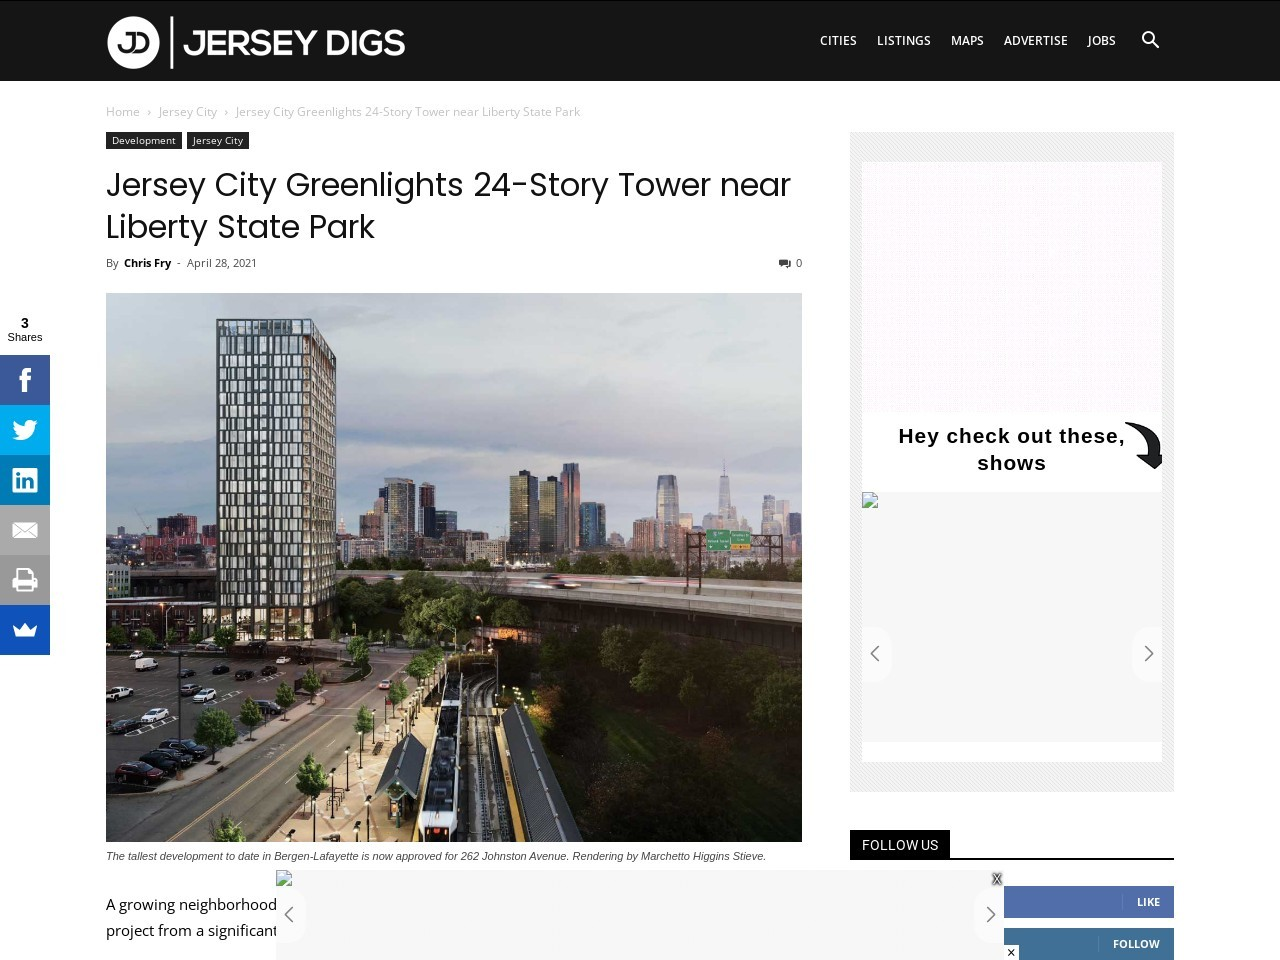 Jersey City Greenlights 24-Story Tower near Liberty State Park